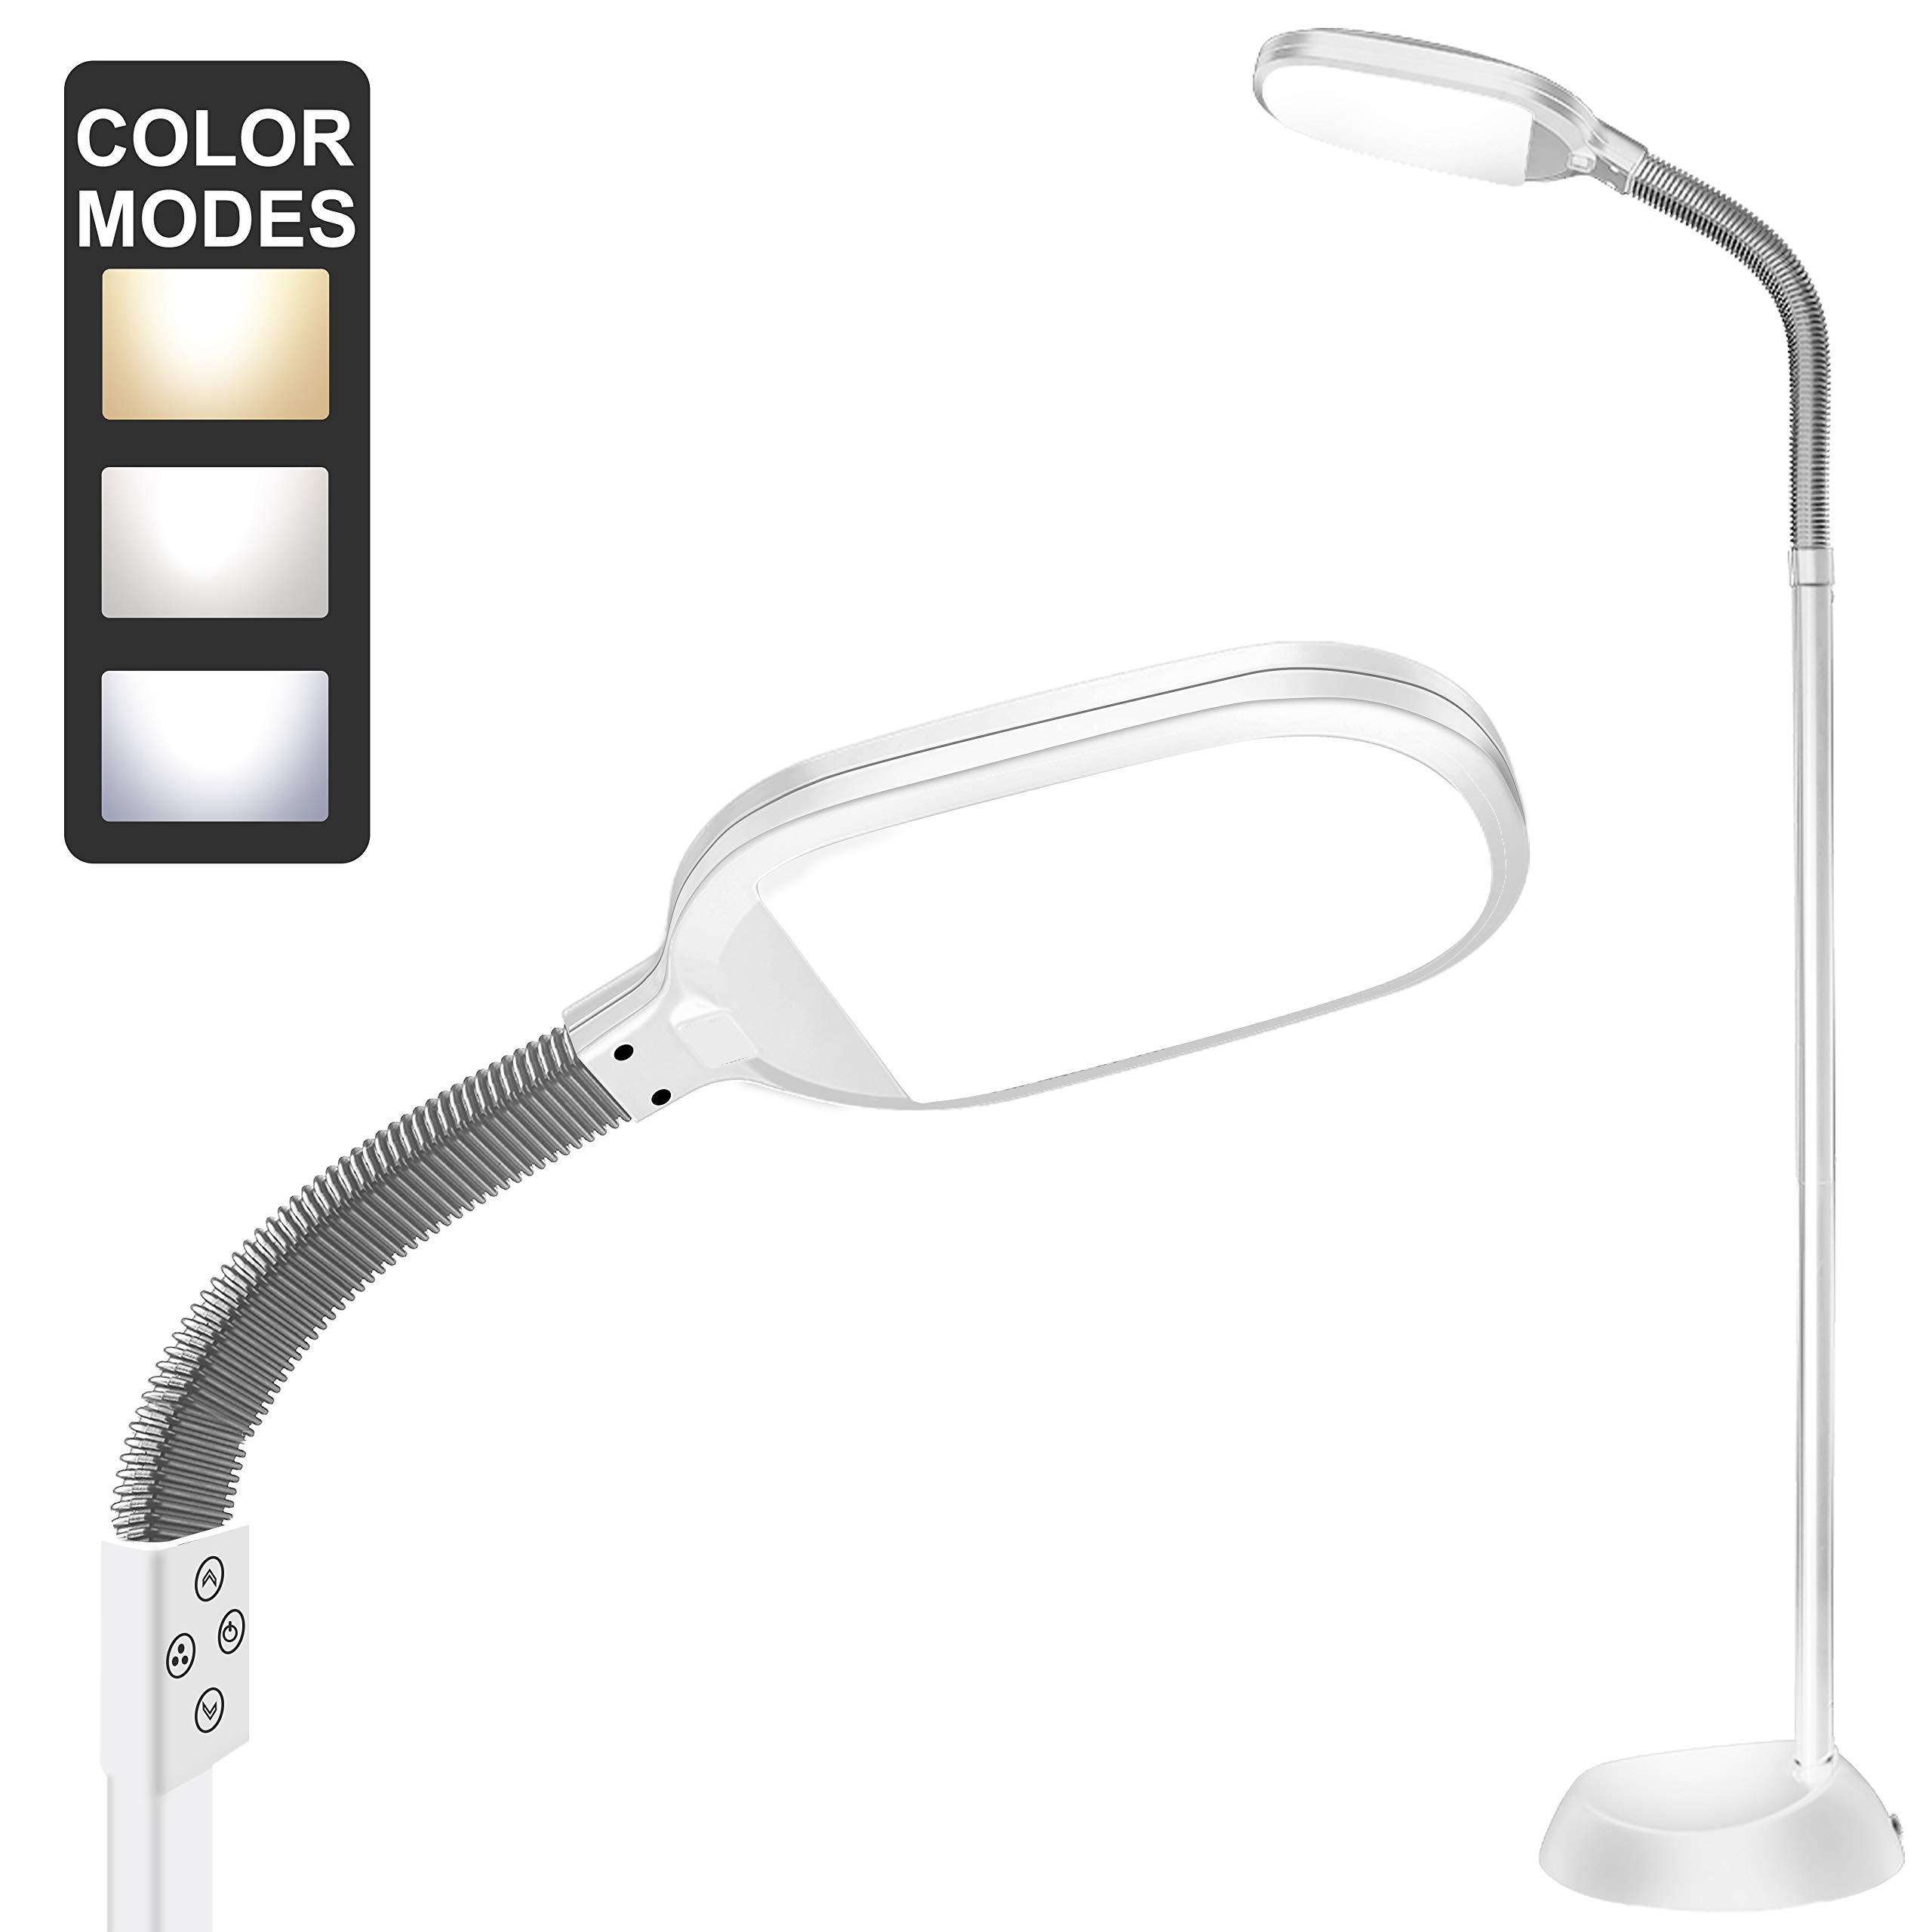 Floor Lamp, addlon Dimmable LED Floor Light with Color Adjustable with Touch Switch - LED Floor Lamps for Living Room - Standing Lamp with Gooseneck for Sewing Bedroom - Slim Pole lamp White